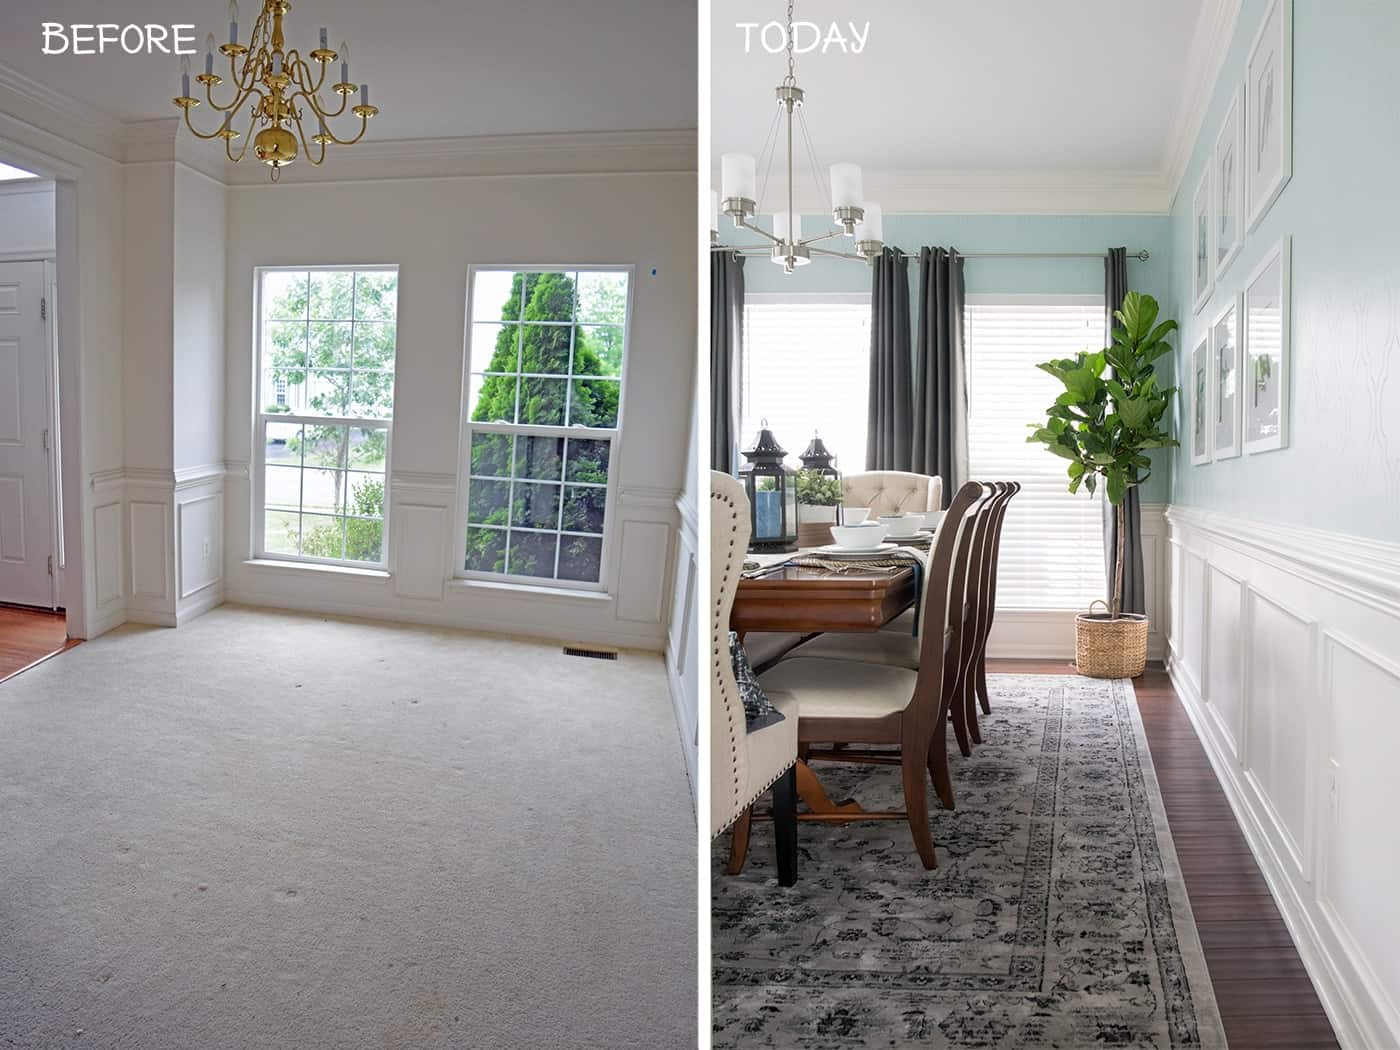 Aqua traditional Dining Room Before and after.